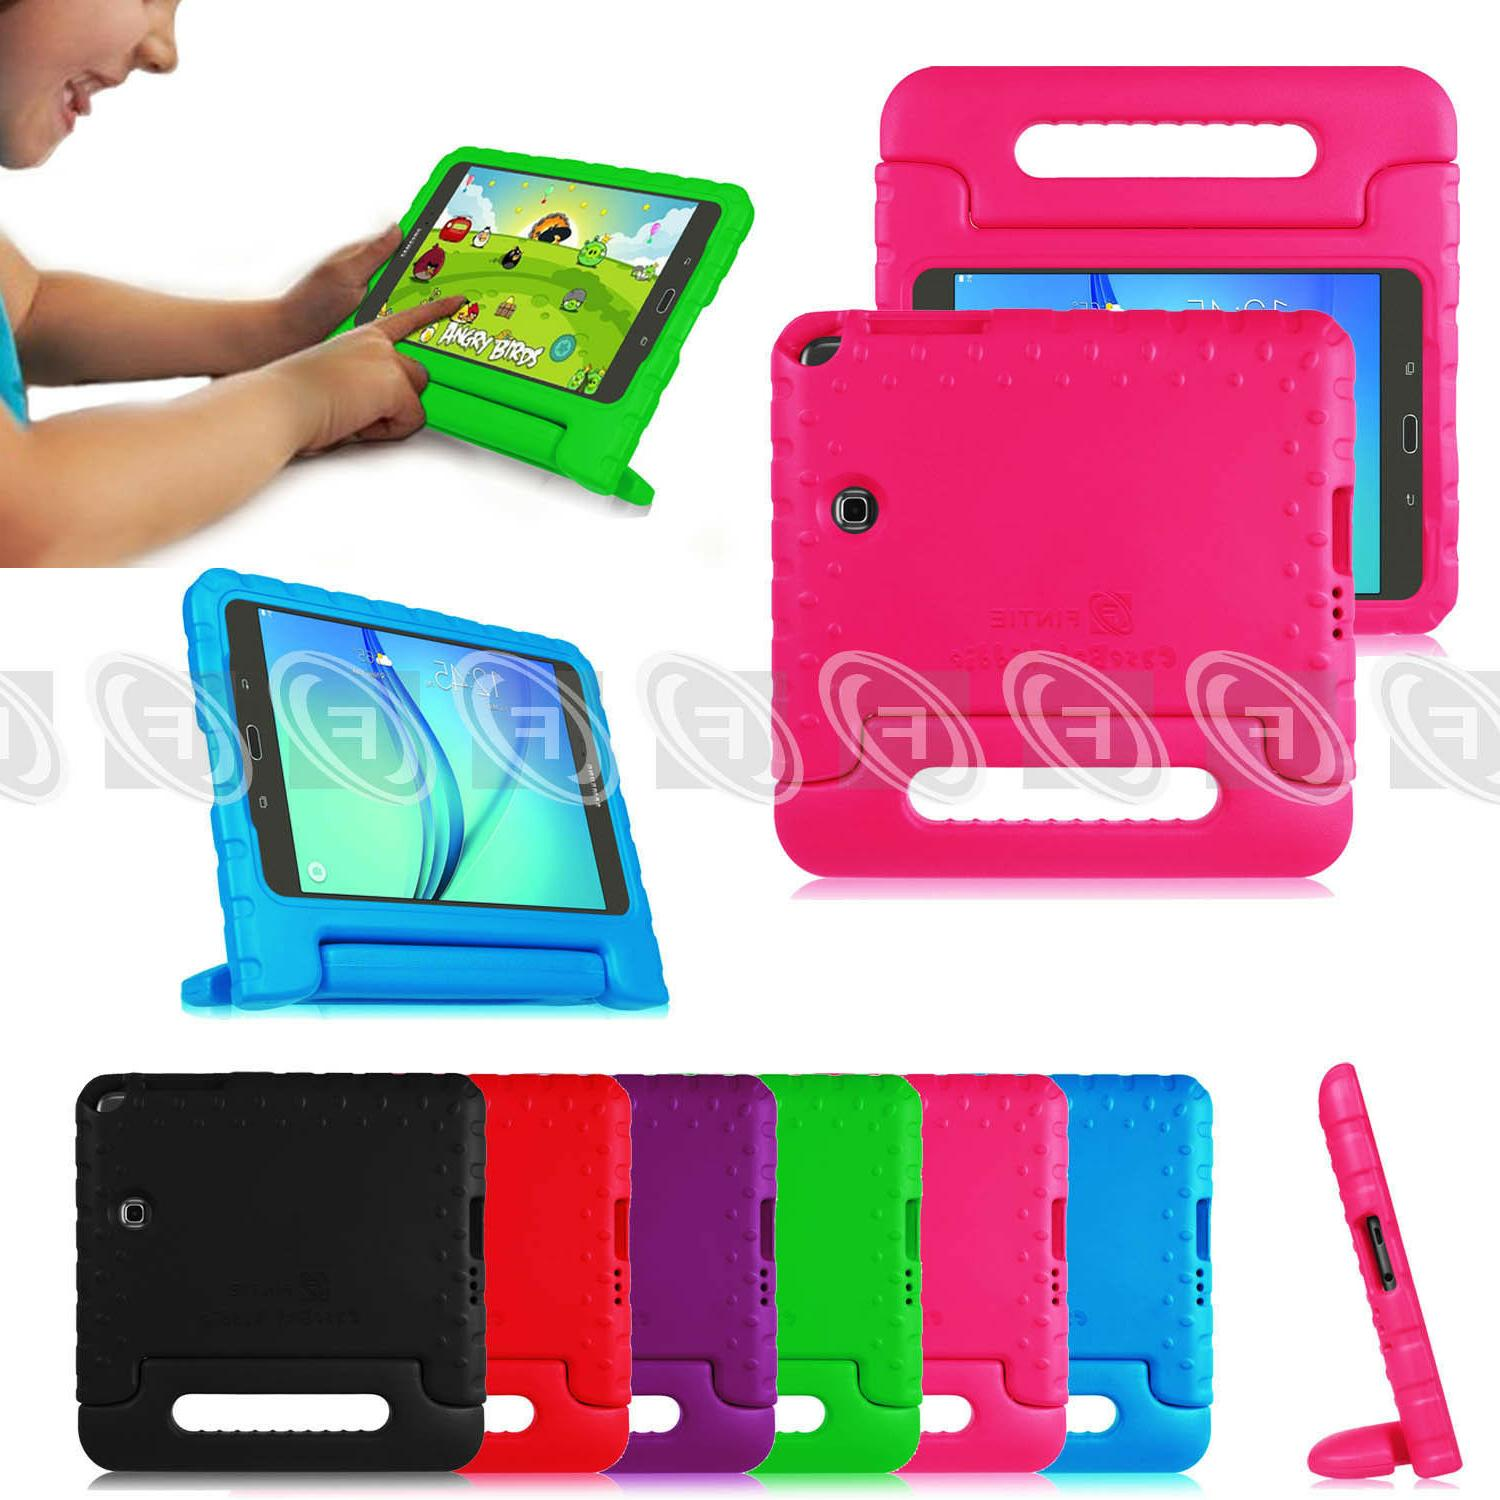 Shock Proof Foam Cover Case for Samsung Galaxy Tab A 8-Inch